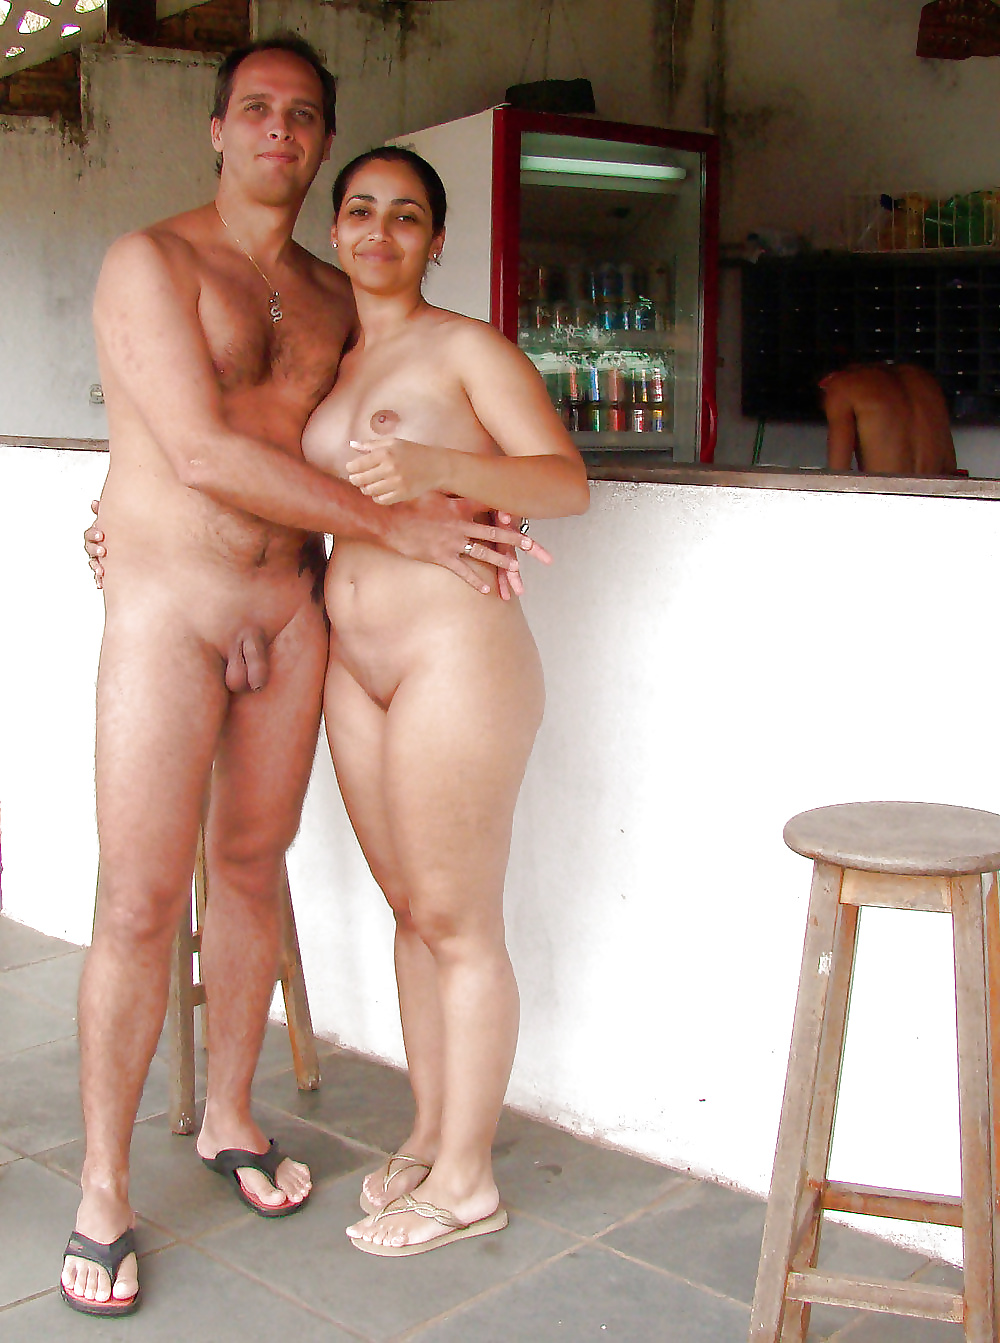 Nudes, Couples, Groups Of People Nude 41 - 14 Pics -7982